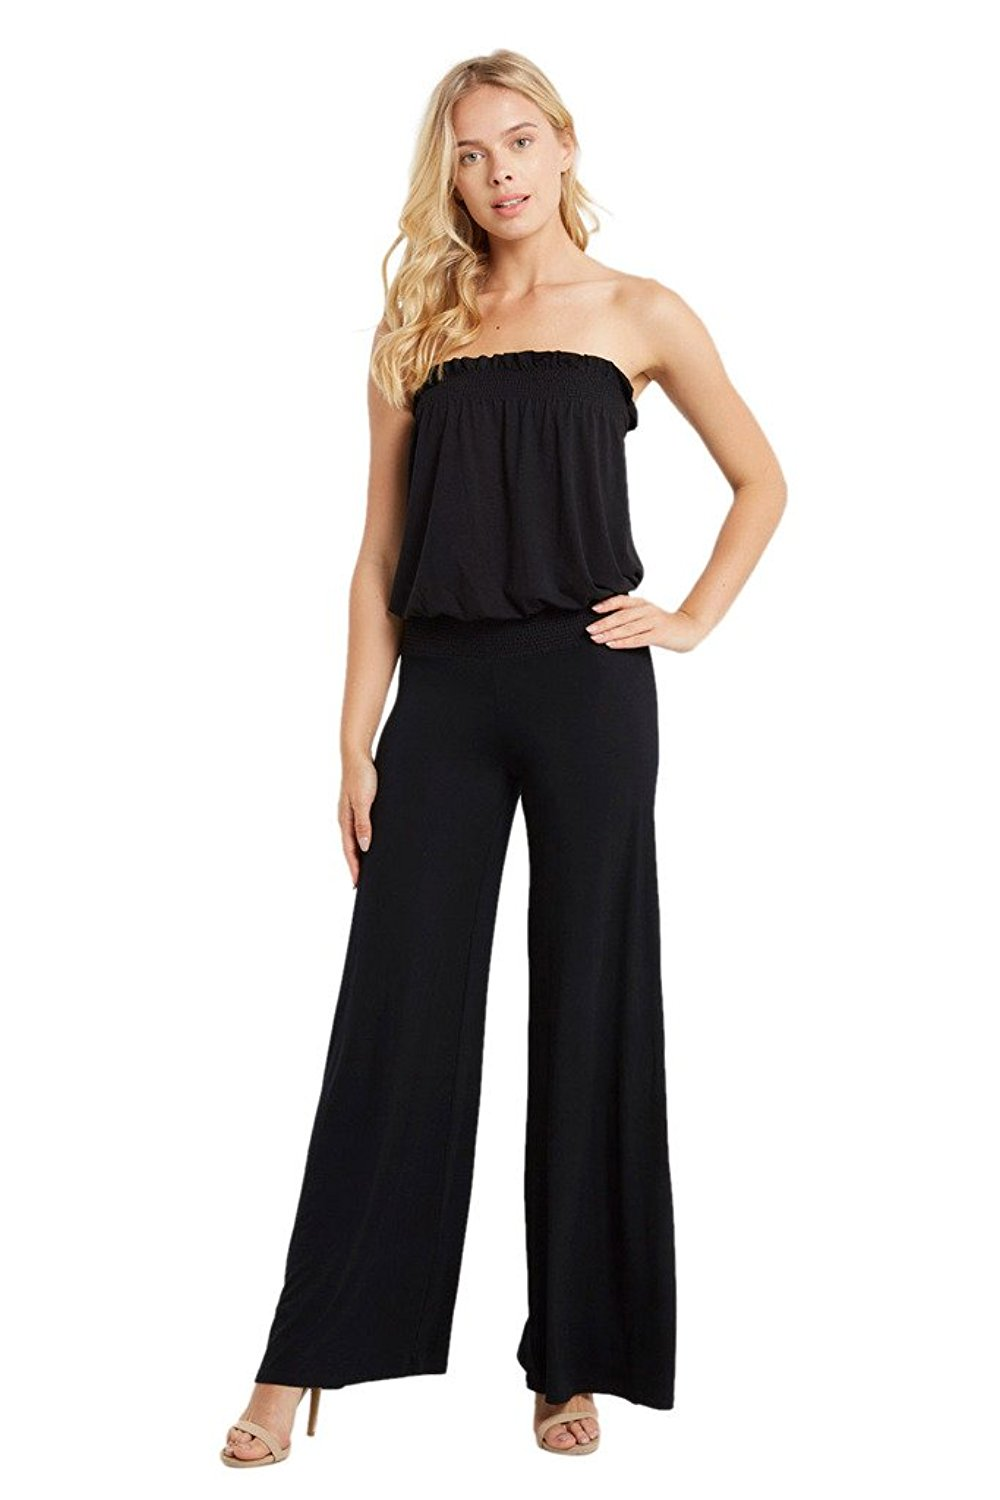 Get Quotations · Poshsquare Women s Smocked Tube Strapless Jersey Wide Leg  Pants Plus Jumpsuit Playsuit USA af53b4a90